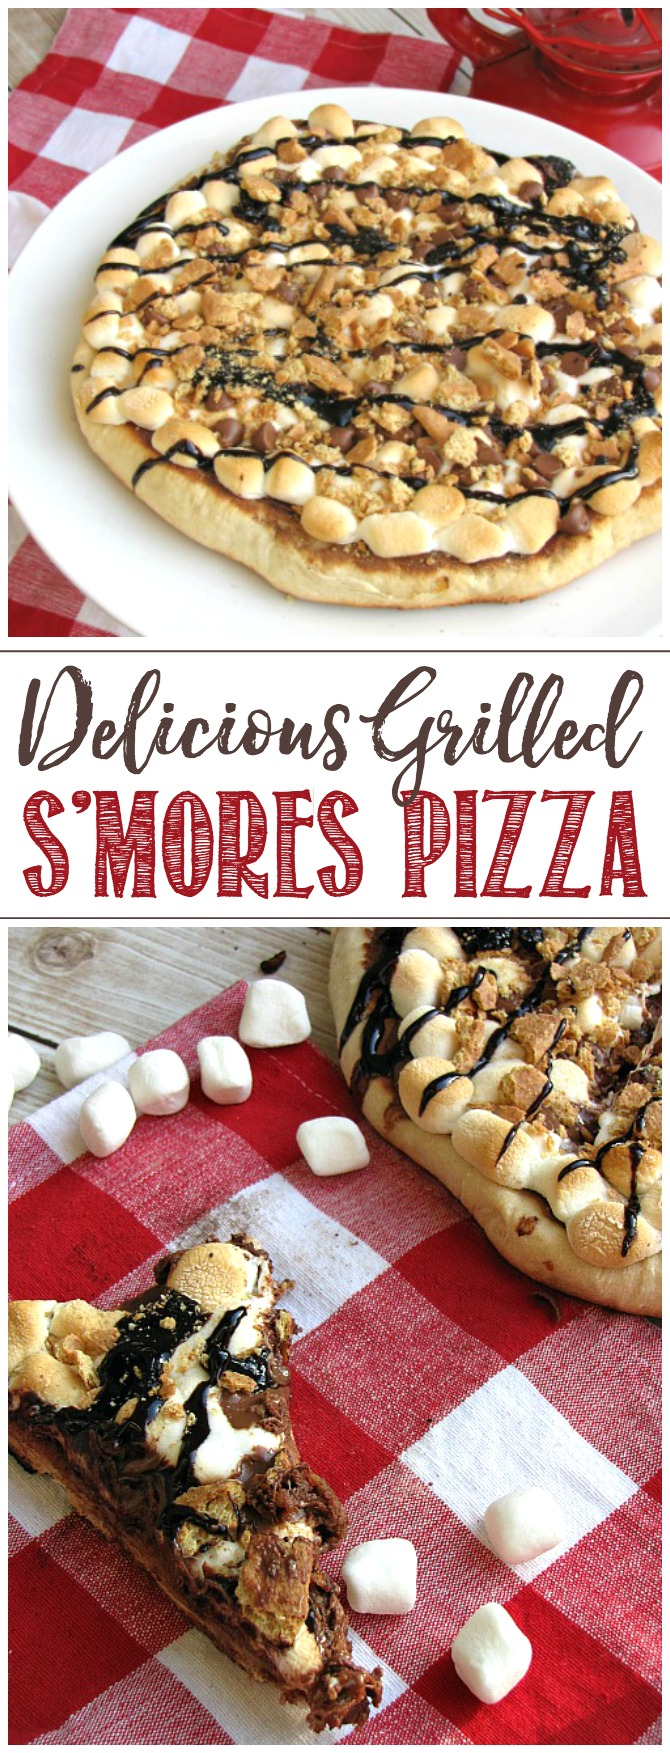 Grilled s'mores pizza. Refrigerated pizza dough grilled on the BBQ and topped with nutella, marshmallows, graham crackers and drizzled with chocolate sauce.